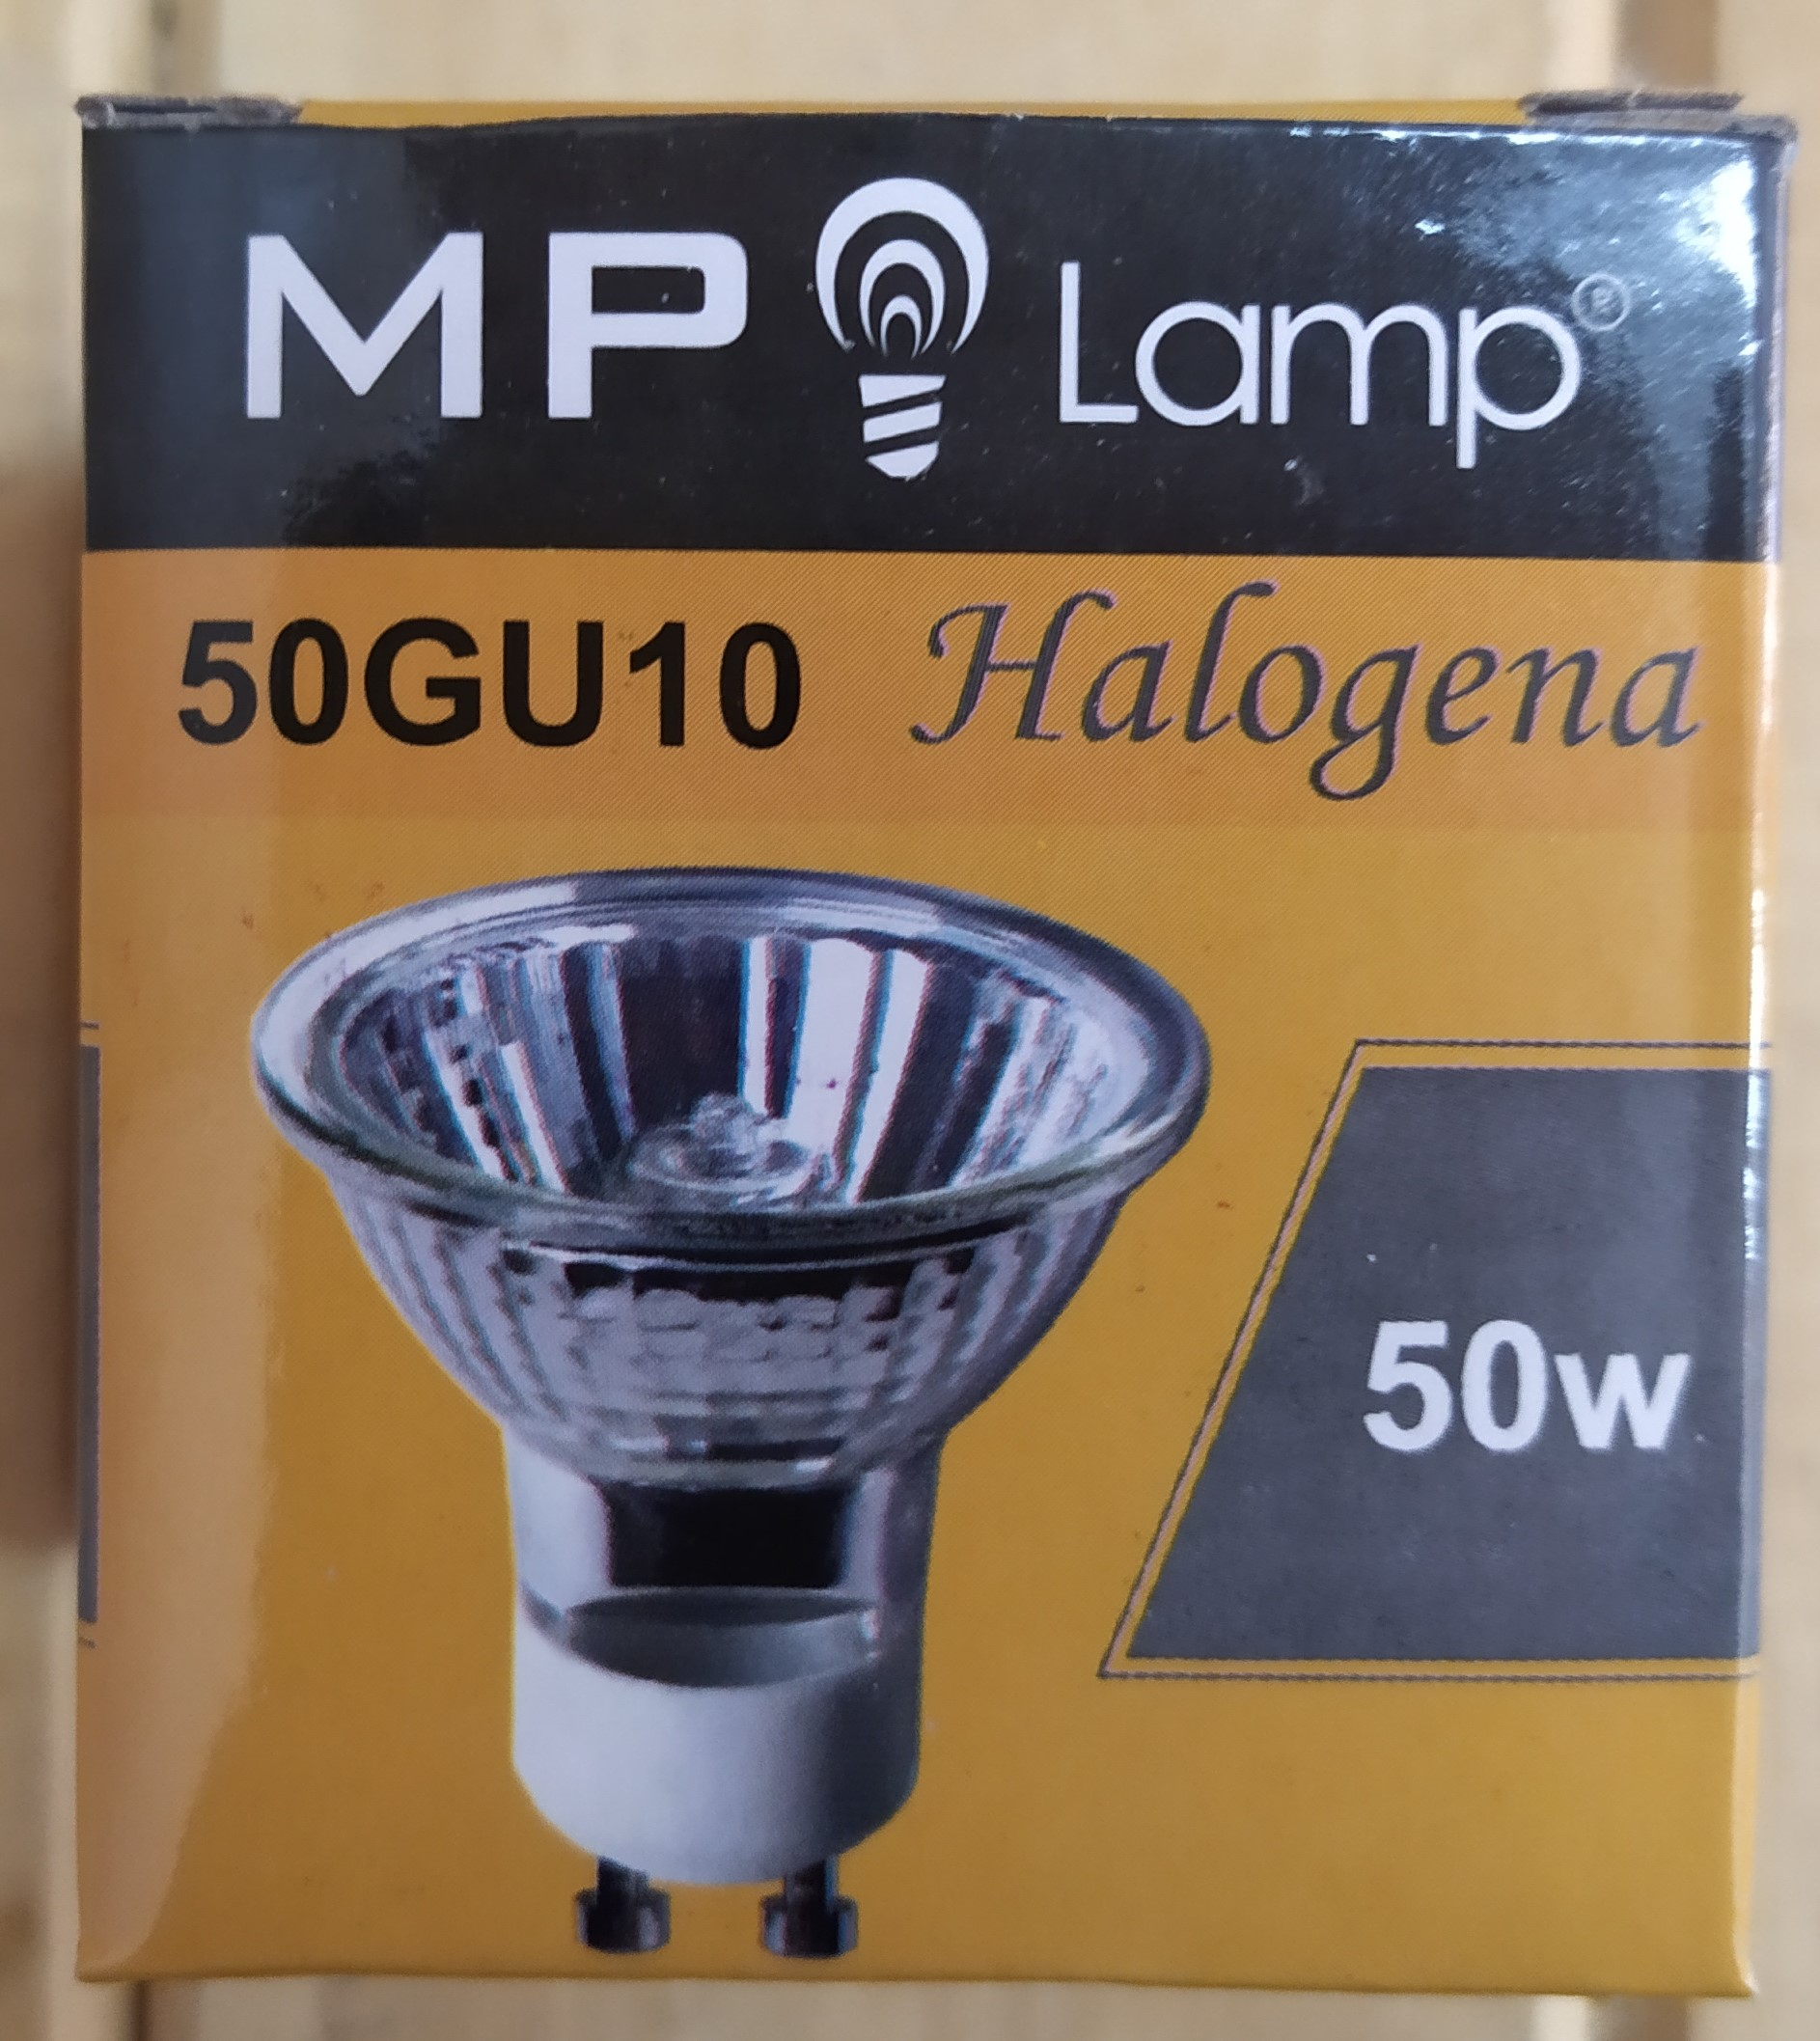 E16 LAMPARA HALOGENA GU10 50W-220V MP